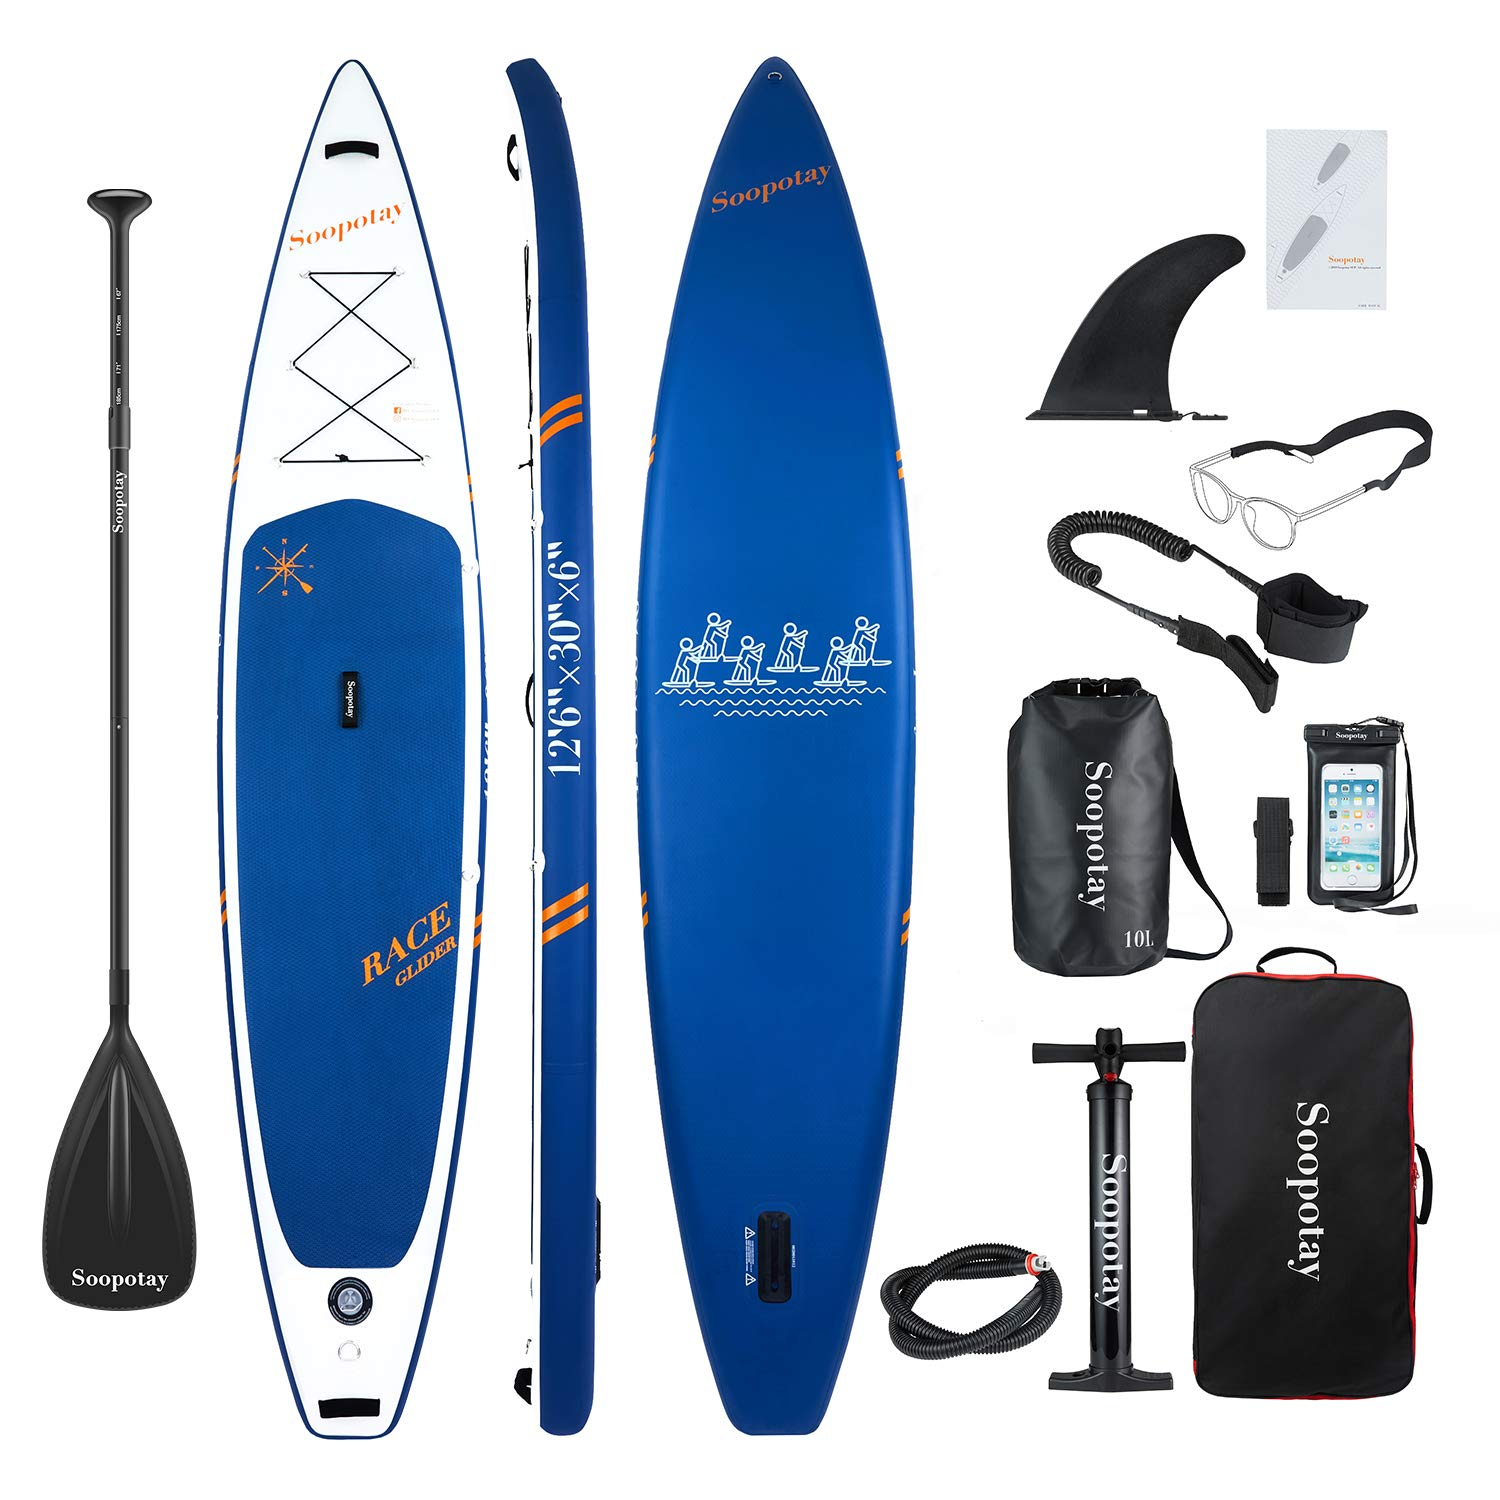 Inflatable SUP Stand Up Paddle Board, Inflatable SUP Board, iSUP Package with All Accessories (Racing-Navy Blue-12'6'' x 30'' x 6'')